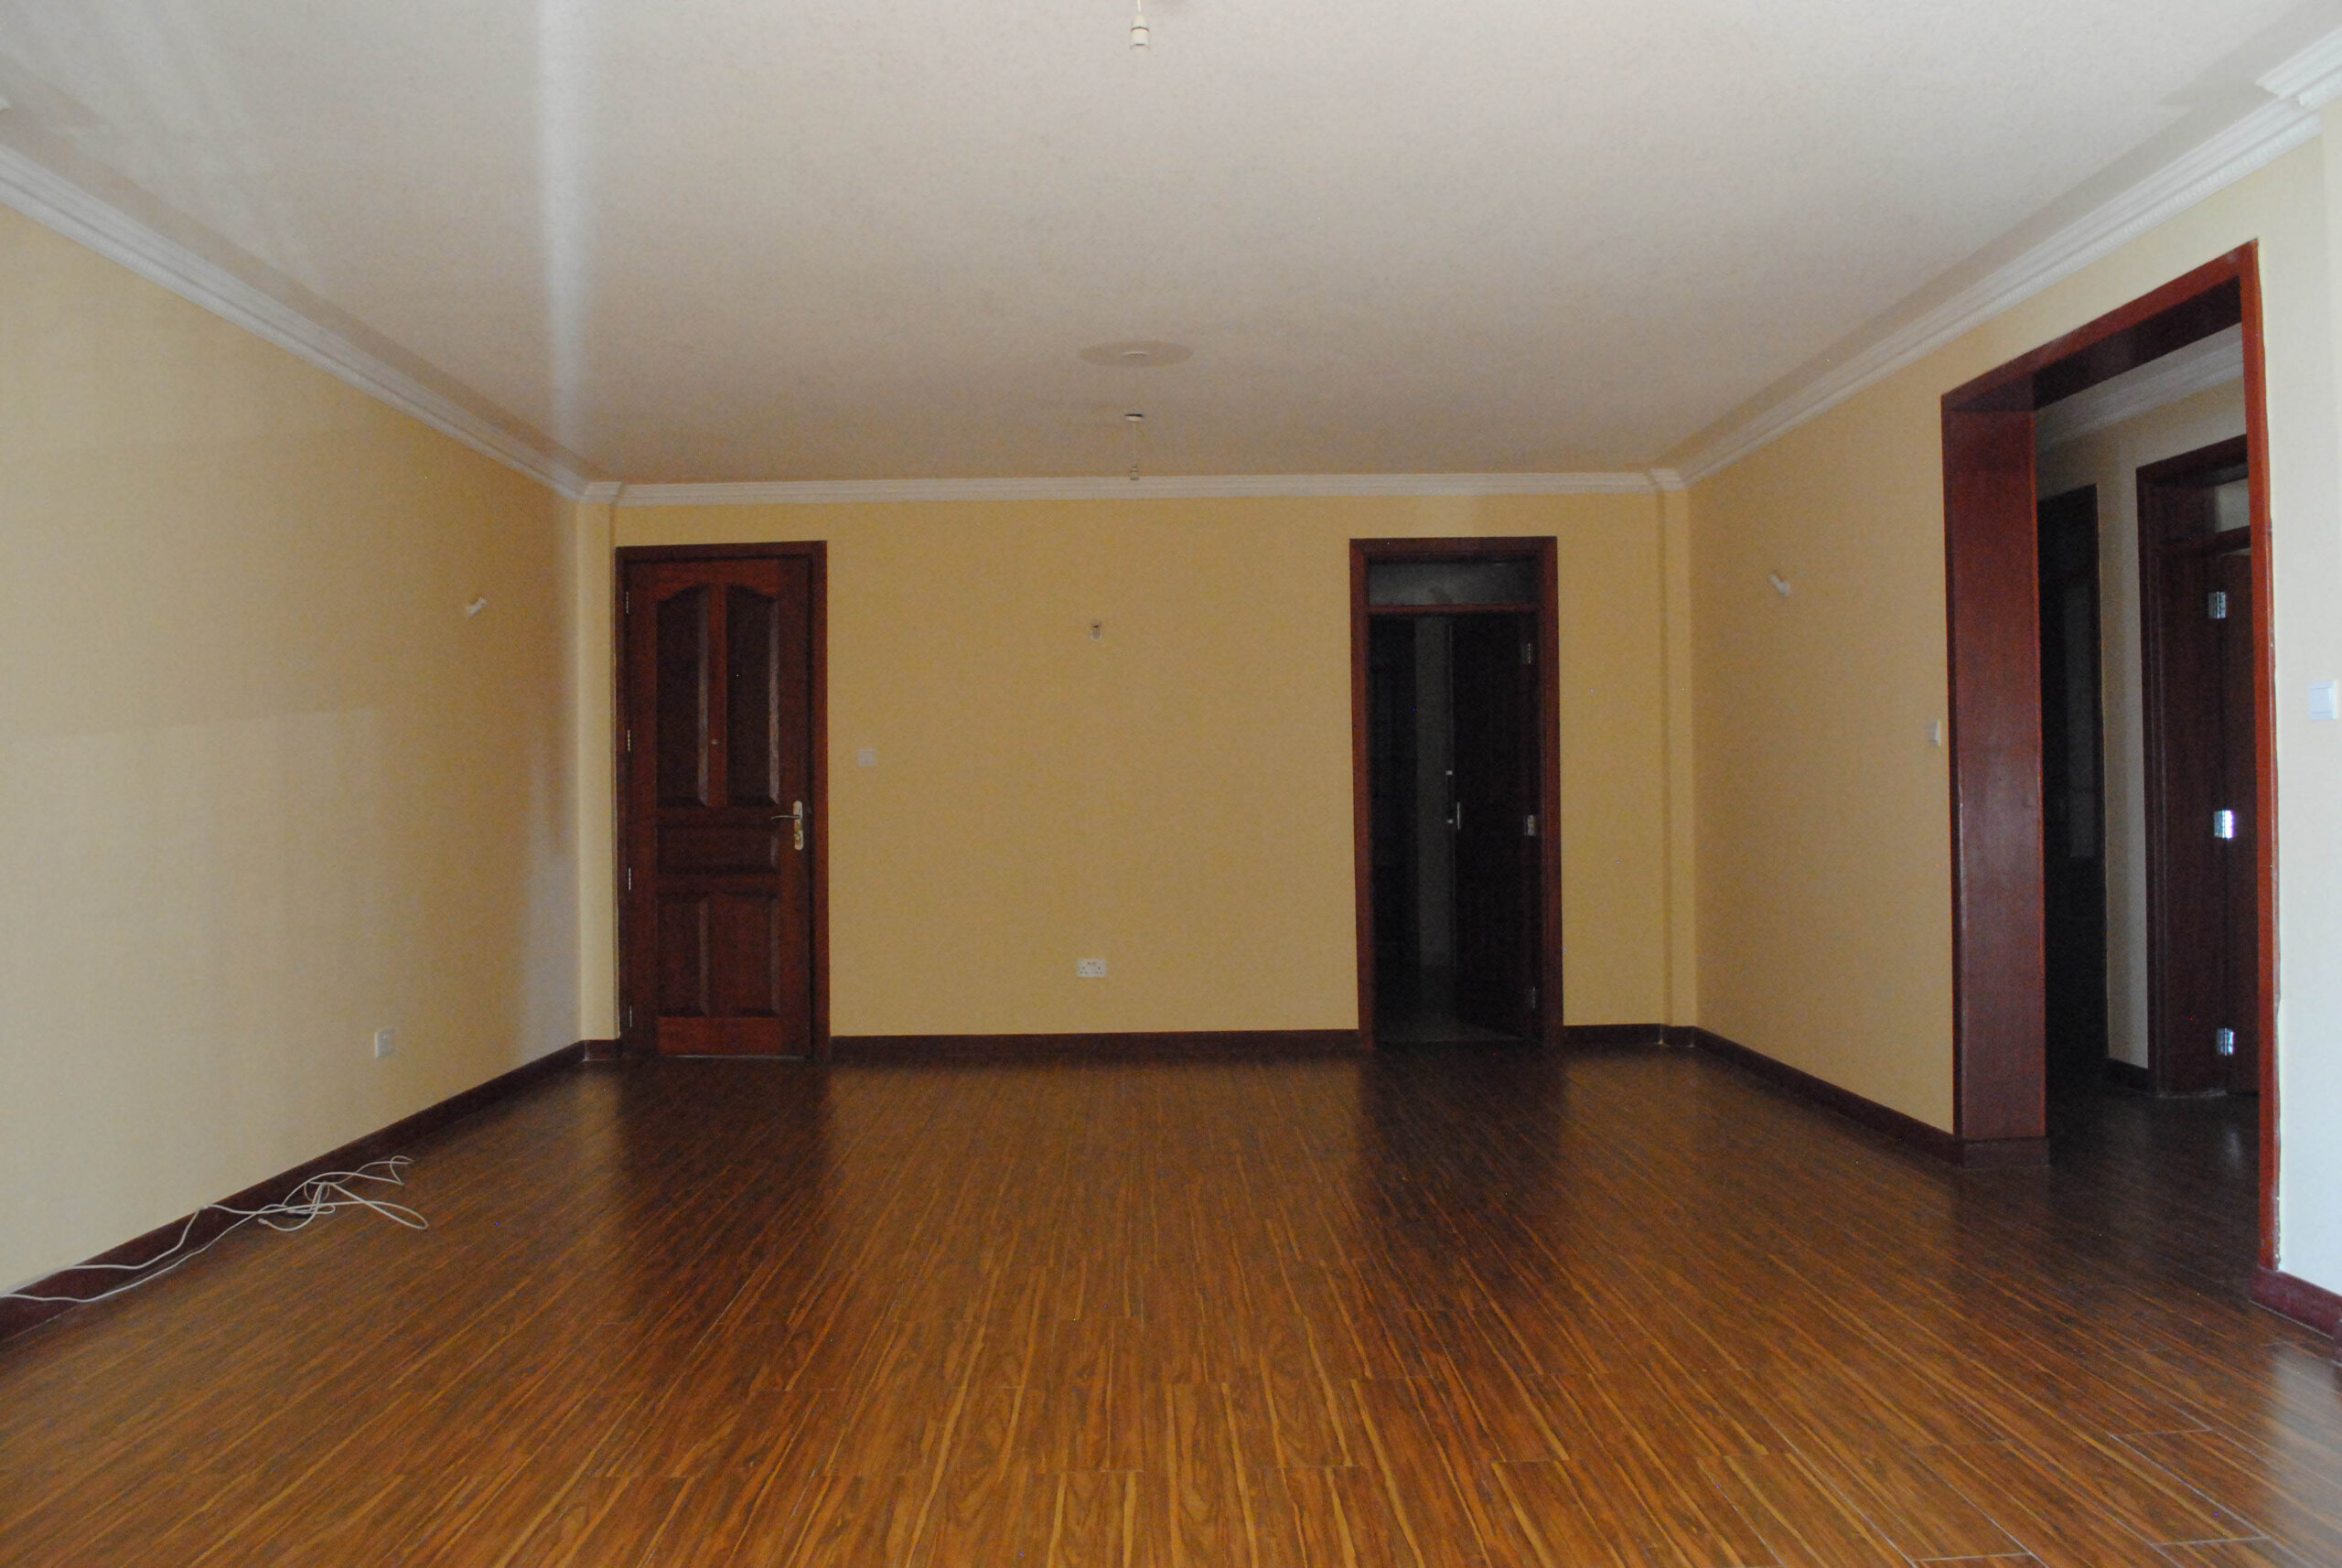 3 Bedroom Apartment with an Sq in Riverside Drive